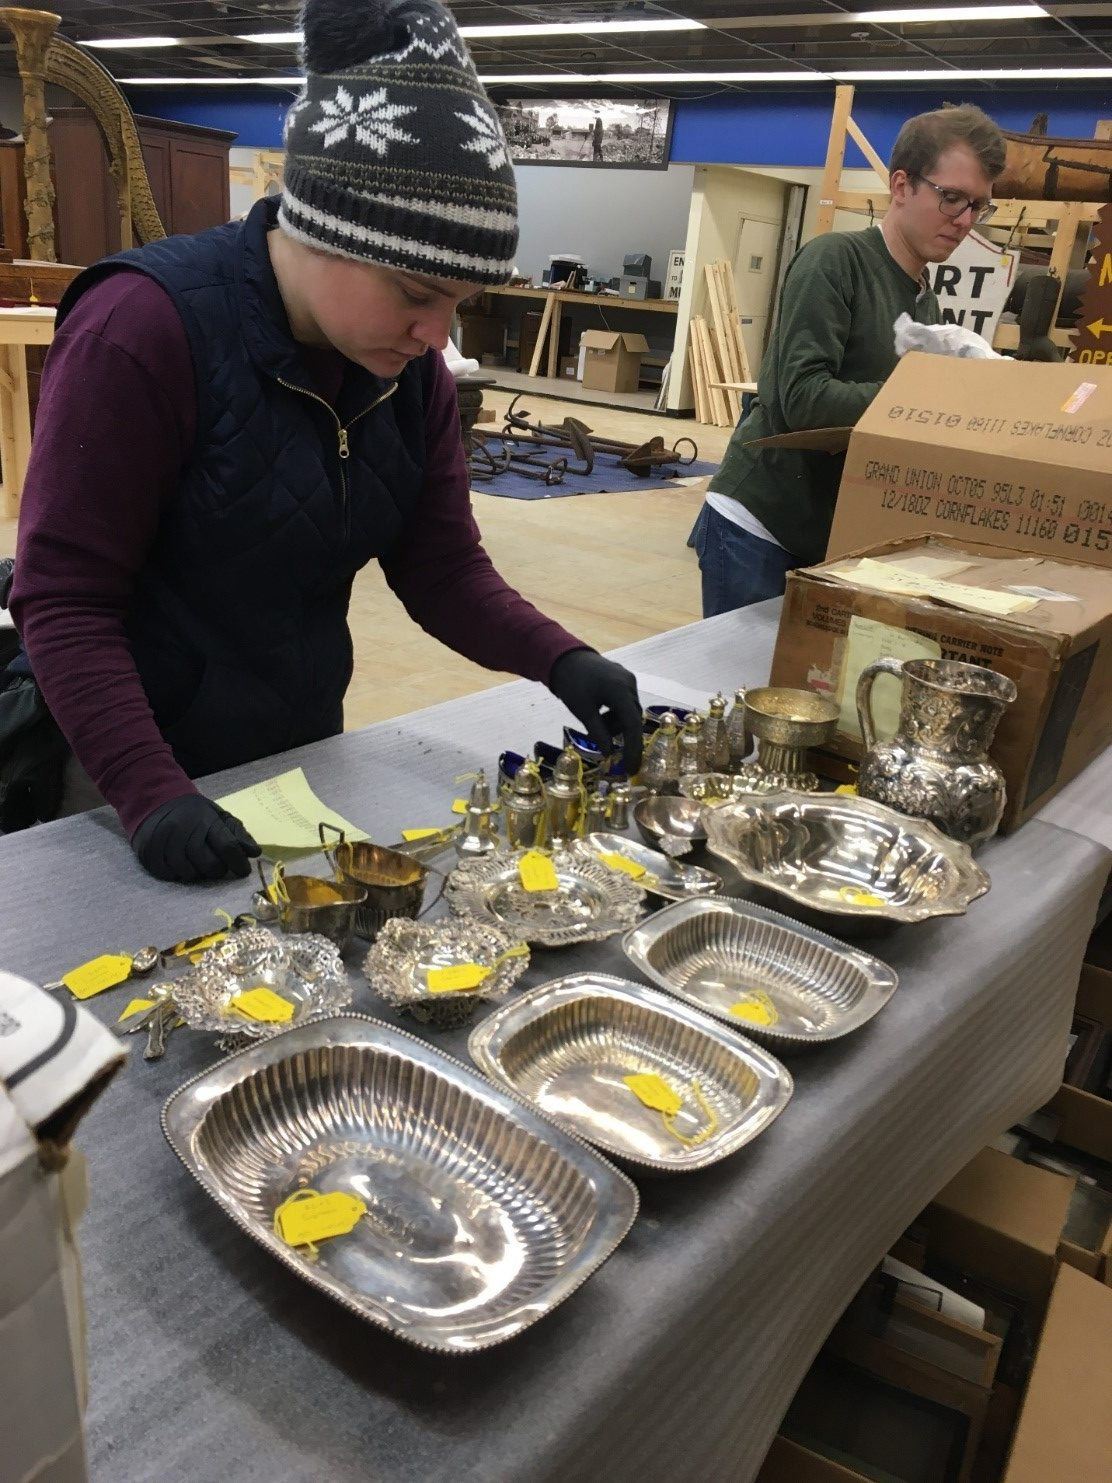 Collections staff begin the process of unpacking and sorting the silver collection